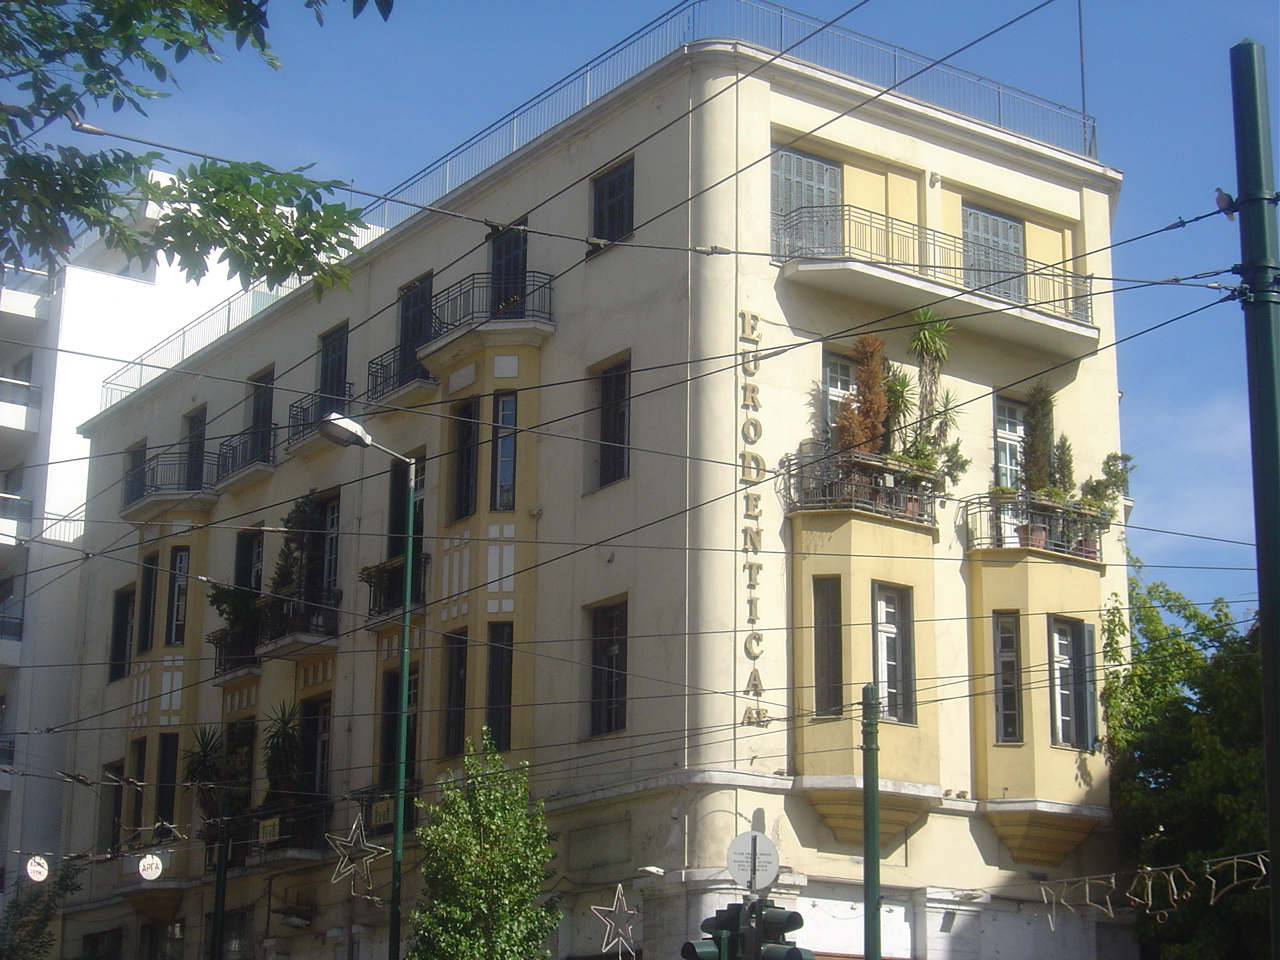 https://upload.wikimedia.org/wikipedia/commons/4/4e/Metaxas_house_in_Athens.jpg